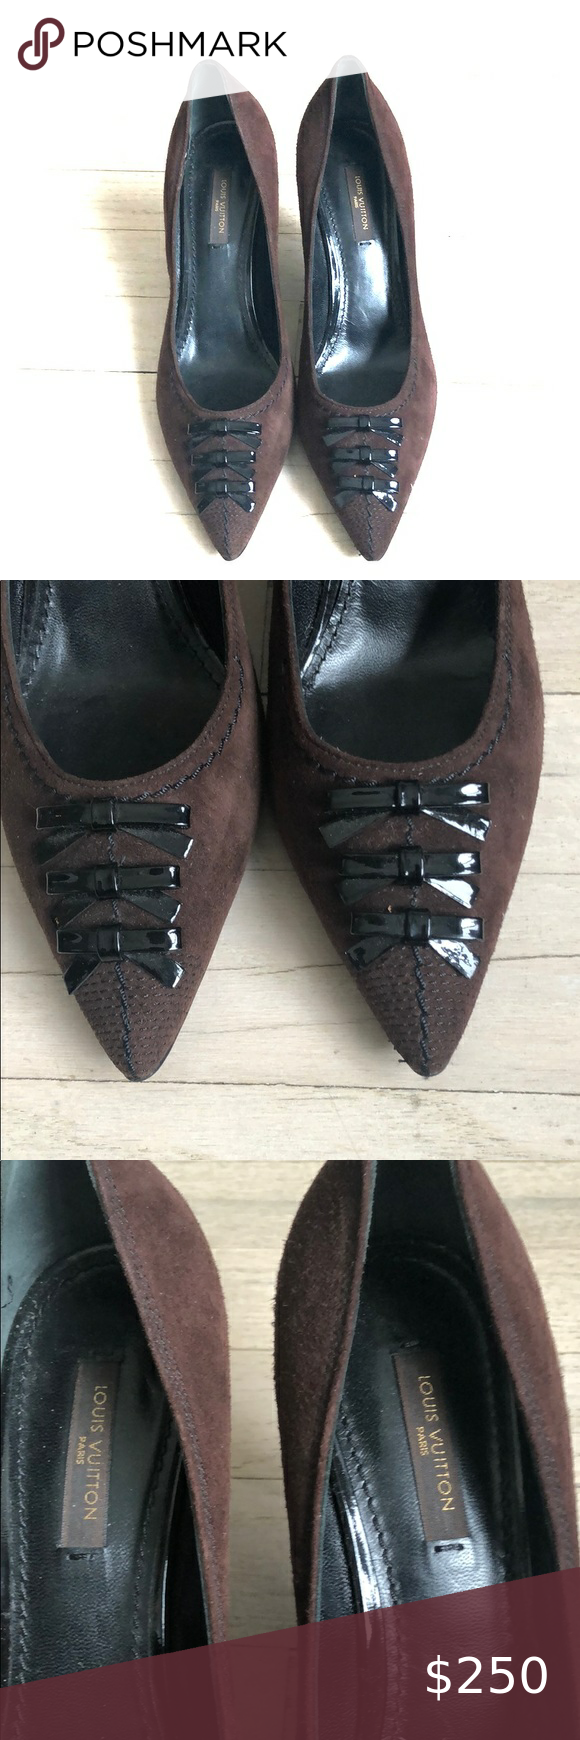 """Louis Vuitton brown saude heels 37.5 LV brown suede 2"""" heel with 3 patent leather bows . Stitch detail. Never worn.  Lb embossed on back of shiny black heel Louis Vuitton Shoes Heels #brown #Heel #Heels #leat #Louis #louis vuitton shoe heels black #Patent #saude #SUEDE #Vuitton"""